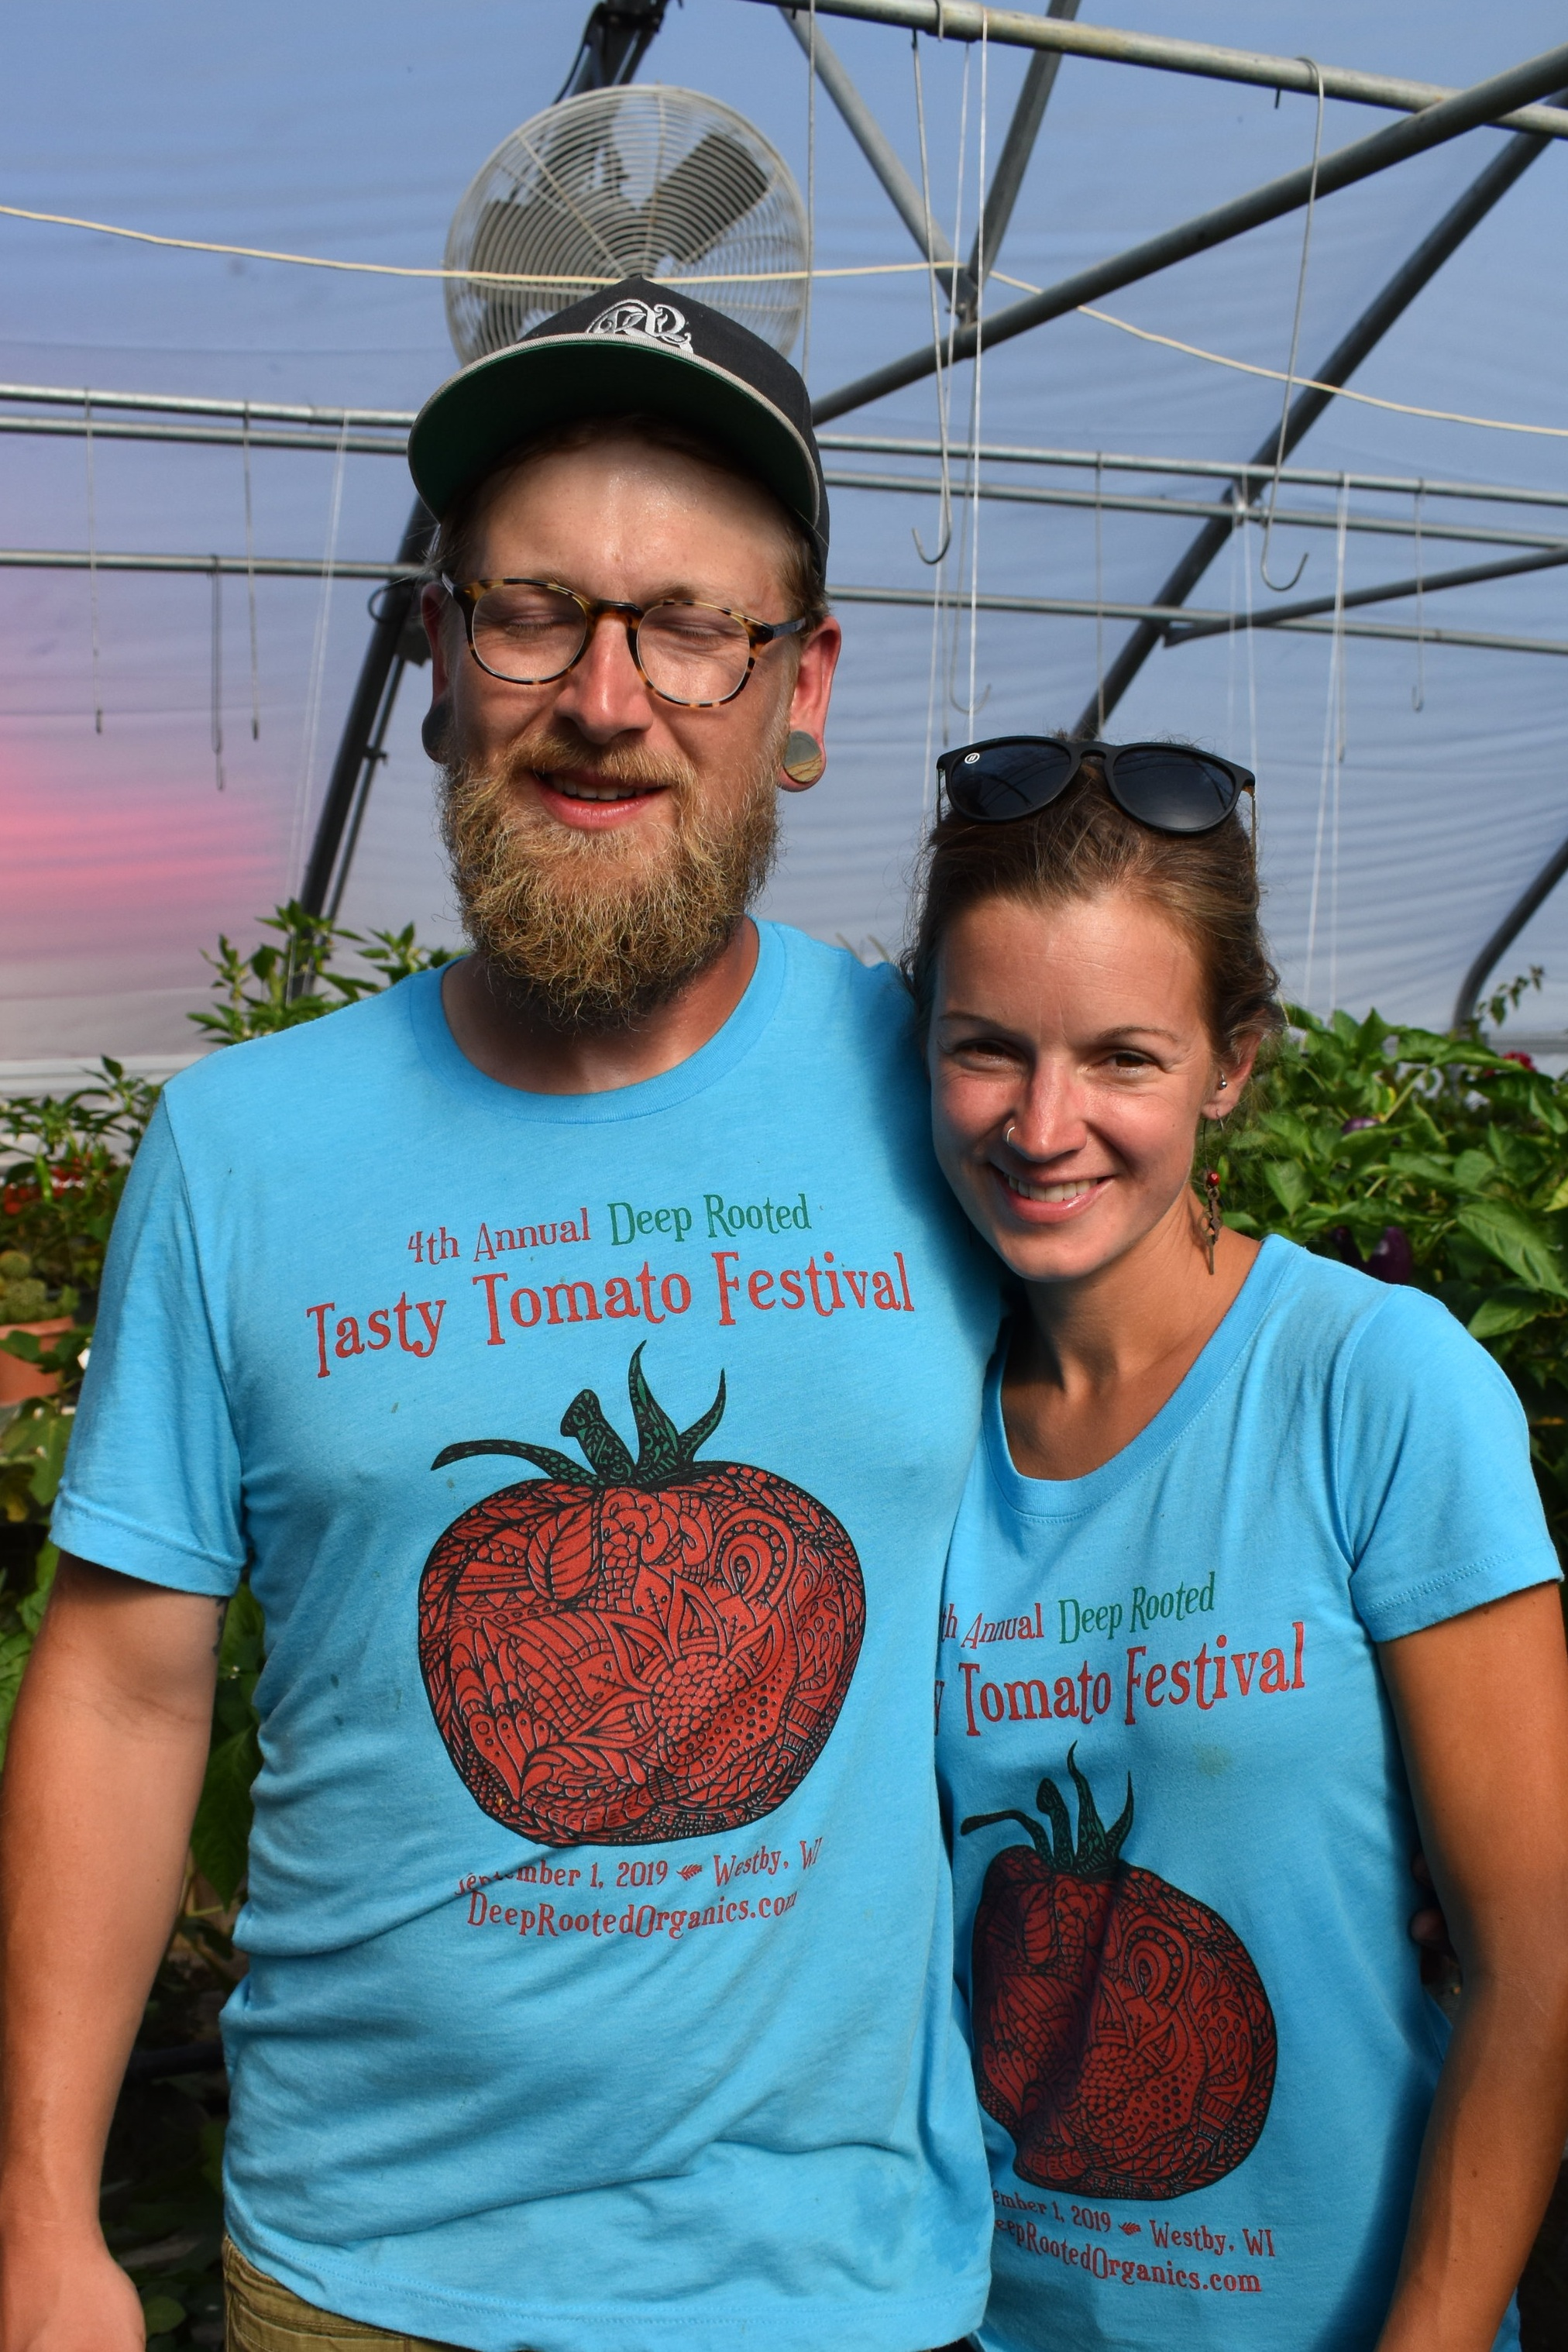 Owners of Deep Rooted Jimmy Fackert and Tiffany Cade